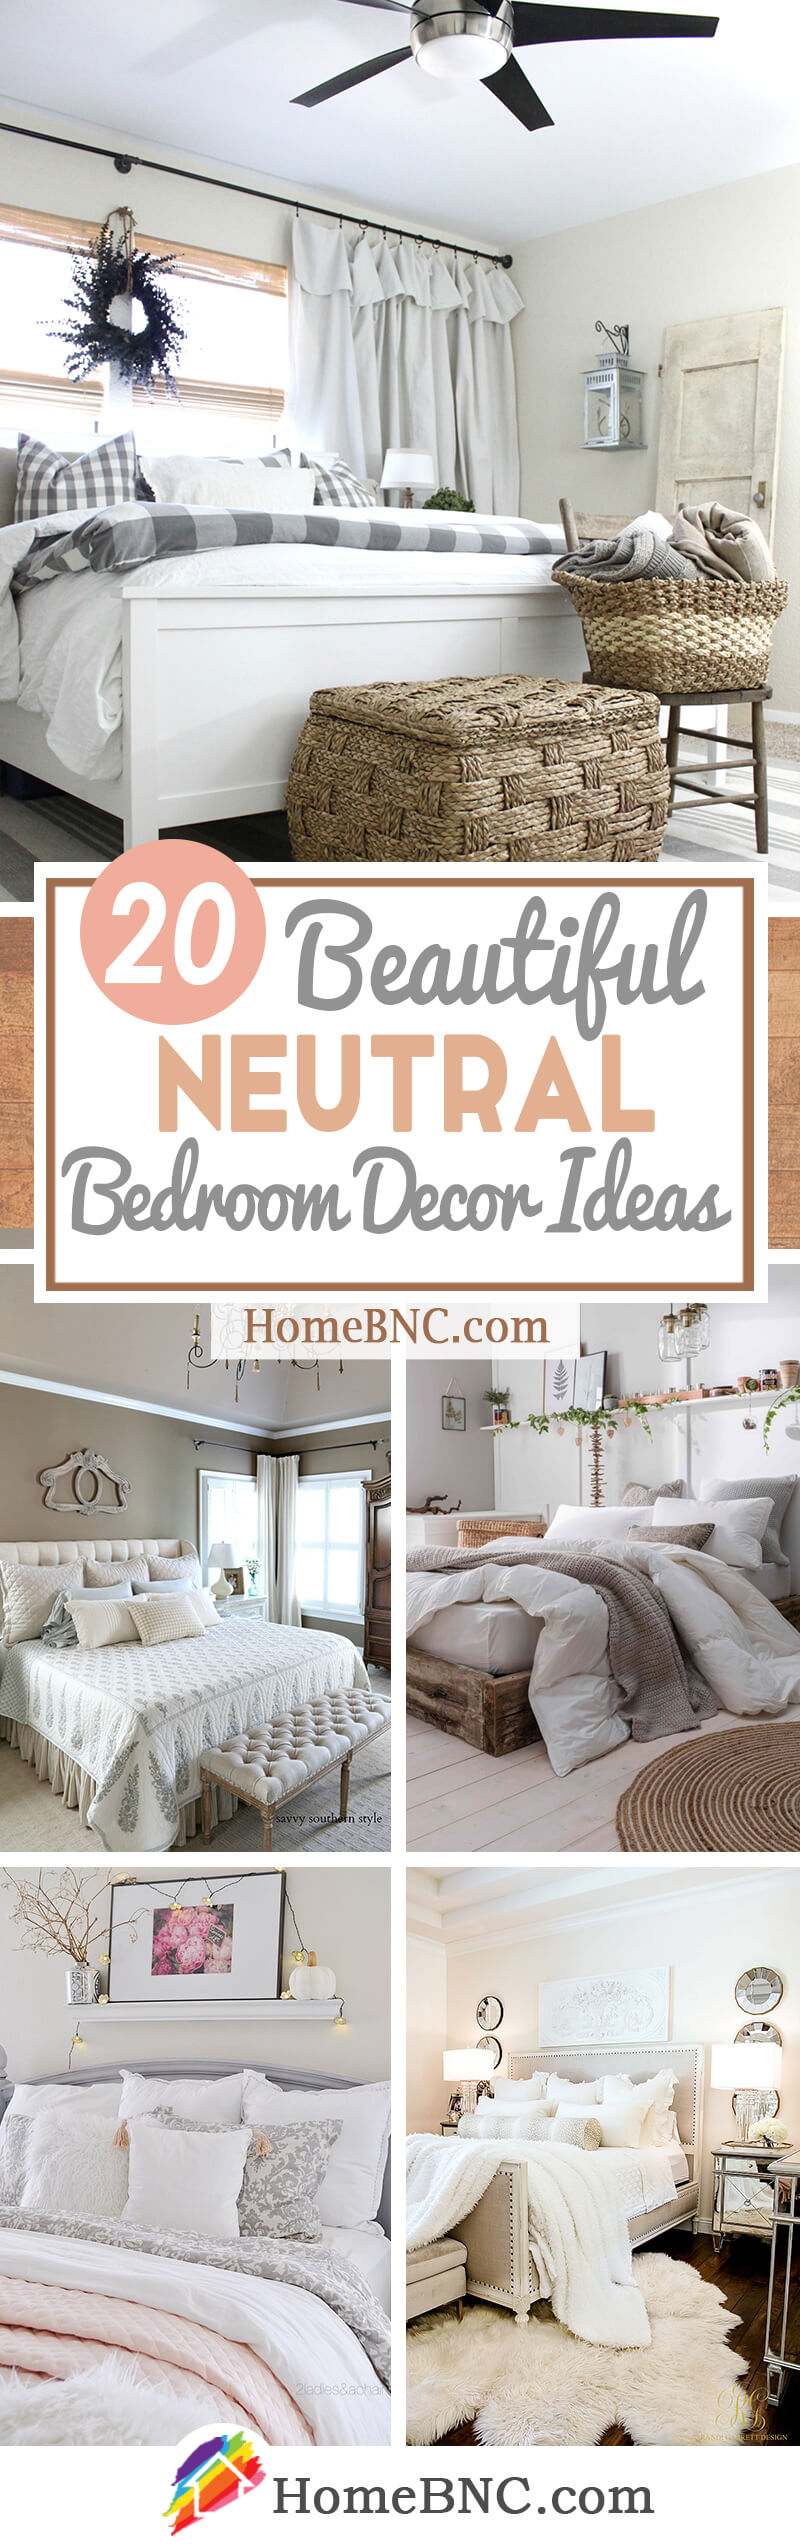 20 Comfy Neutral Bedroom Design And Decor Ideas To Help You Rest Easy